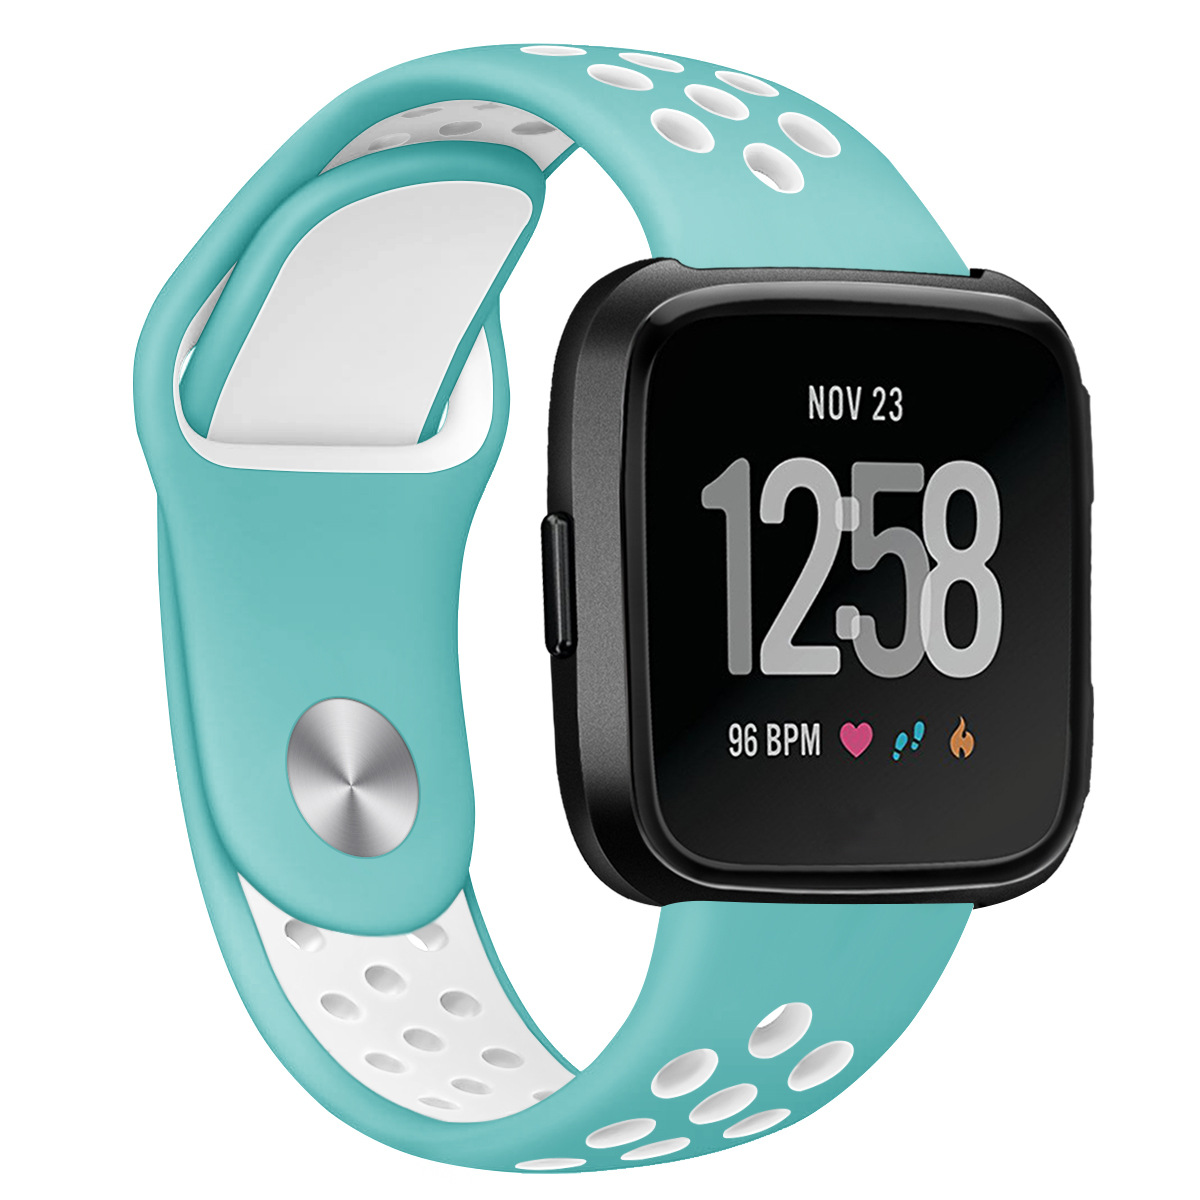 Replacement Band Sport Breathable Silicon Wristband Watch Strap for Fitbit Versa Blue with white